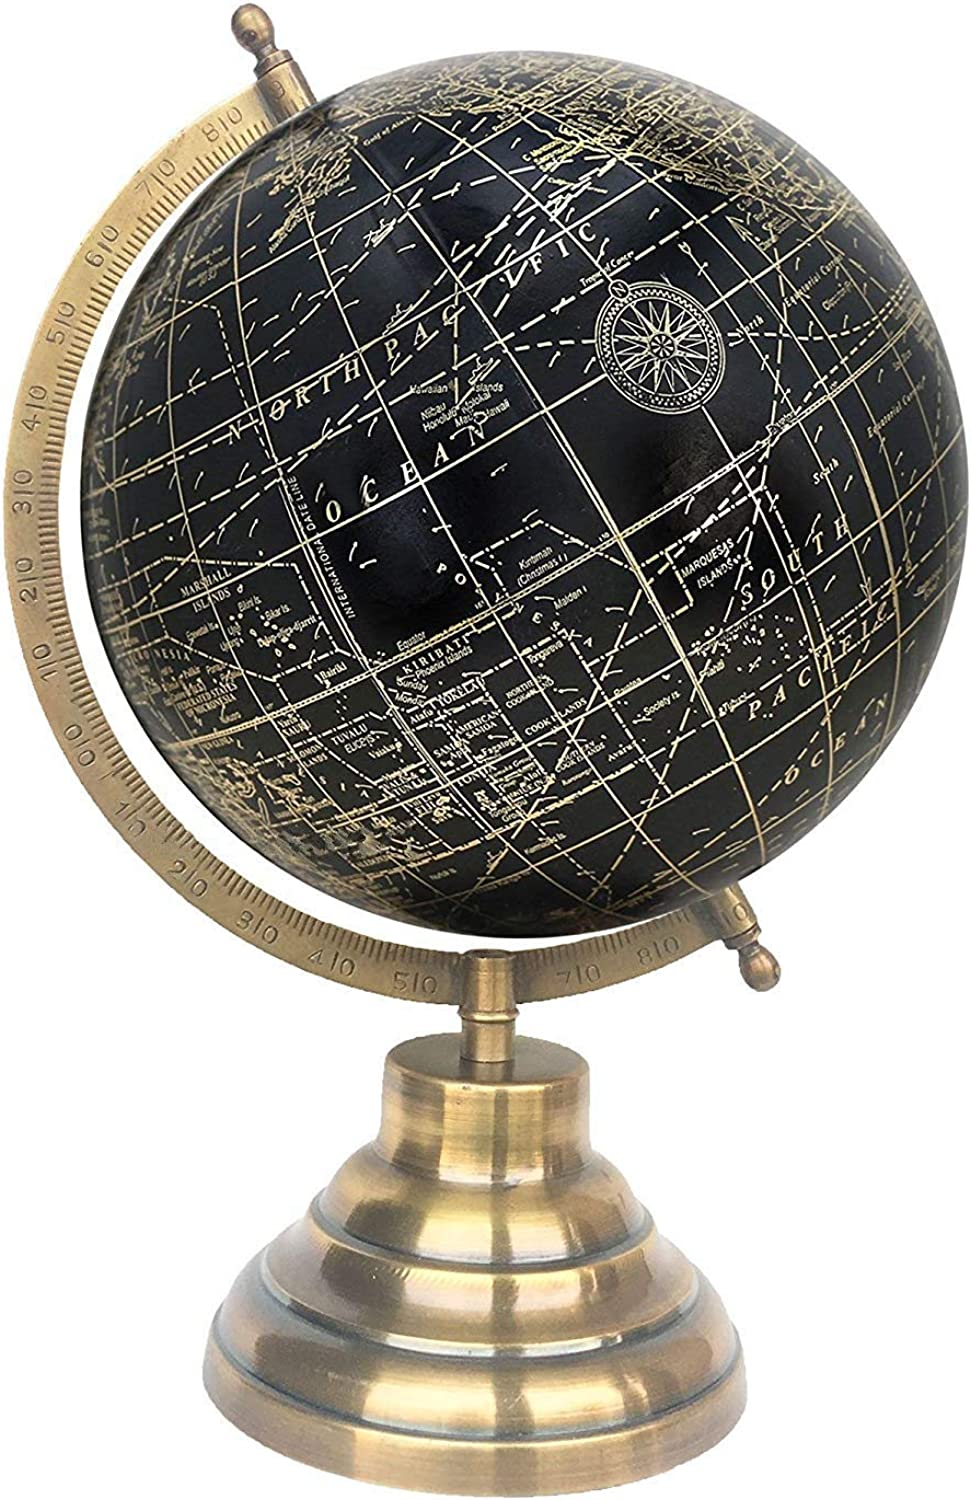 8  Black gold Educational, Antique Globe with Brass Antique Arc and Base, World Globe, Home Decor, Office Decor, Gift Item by Globes Hub